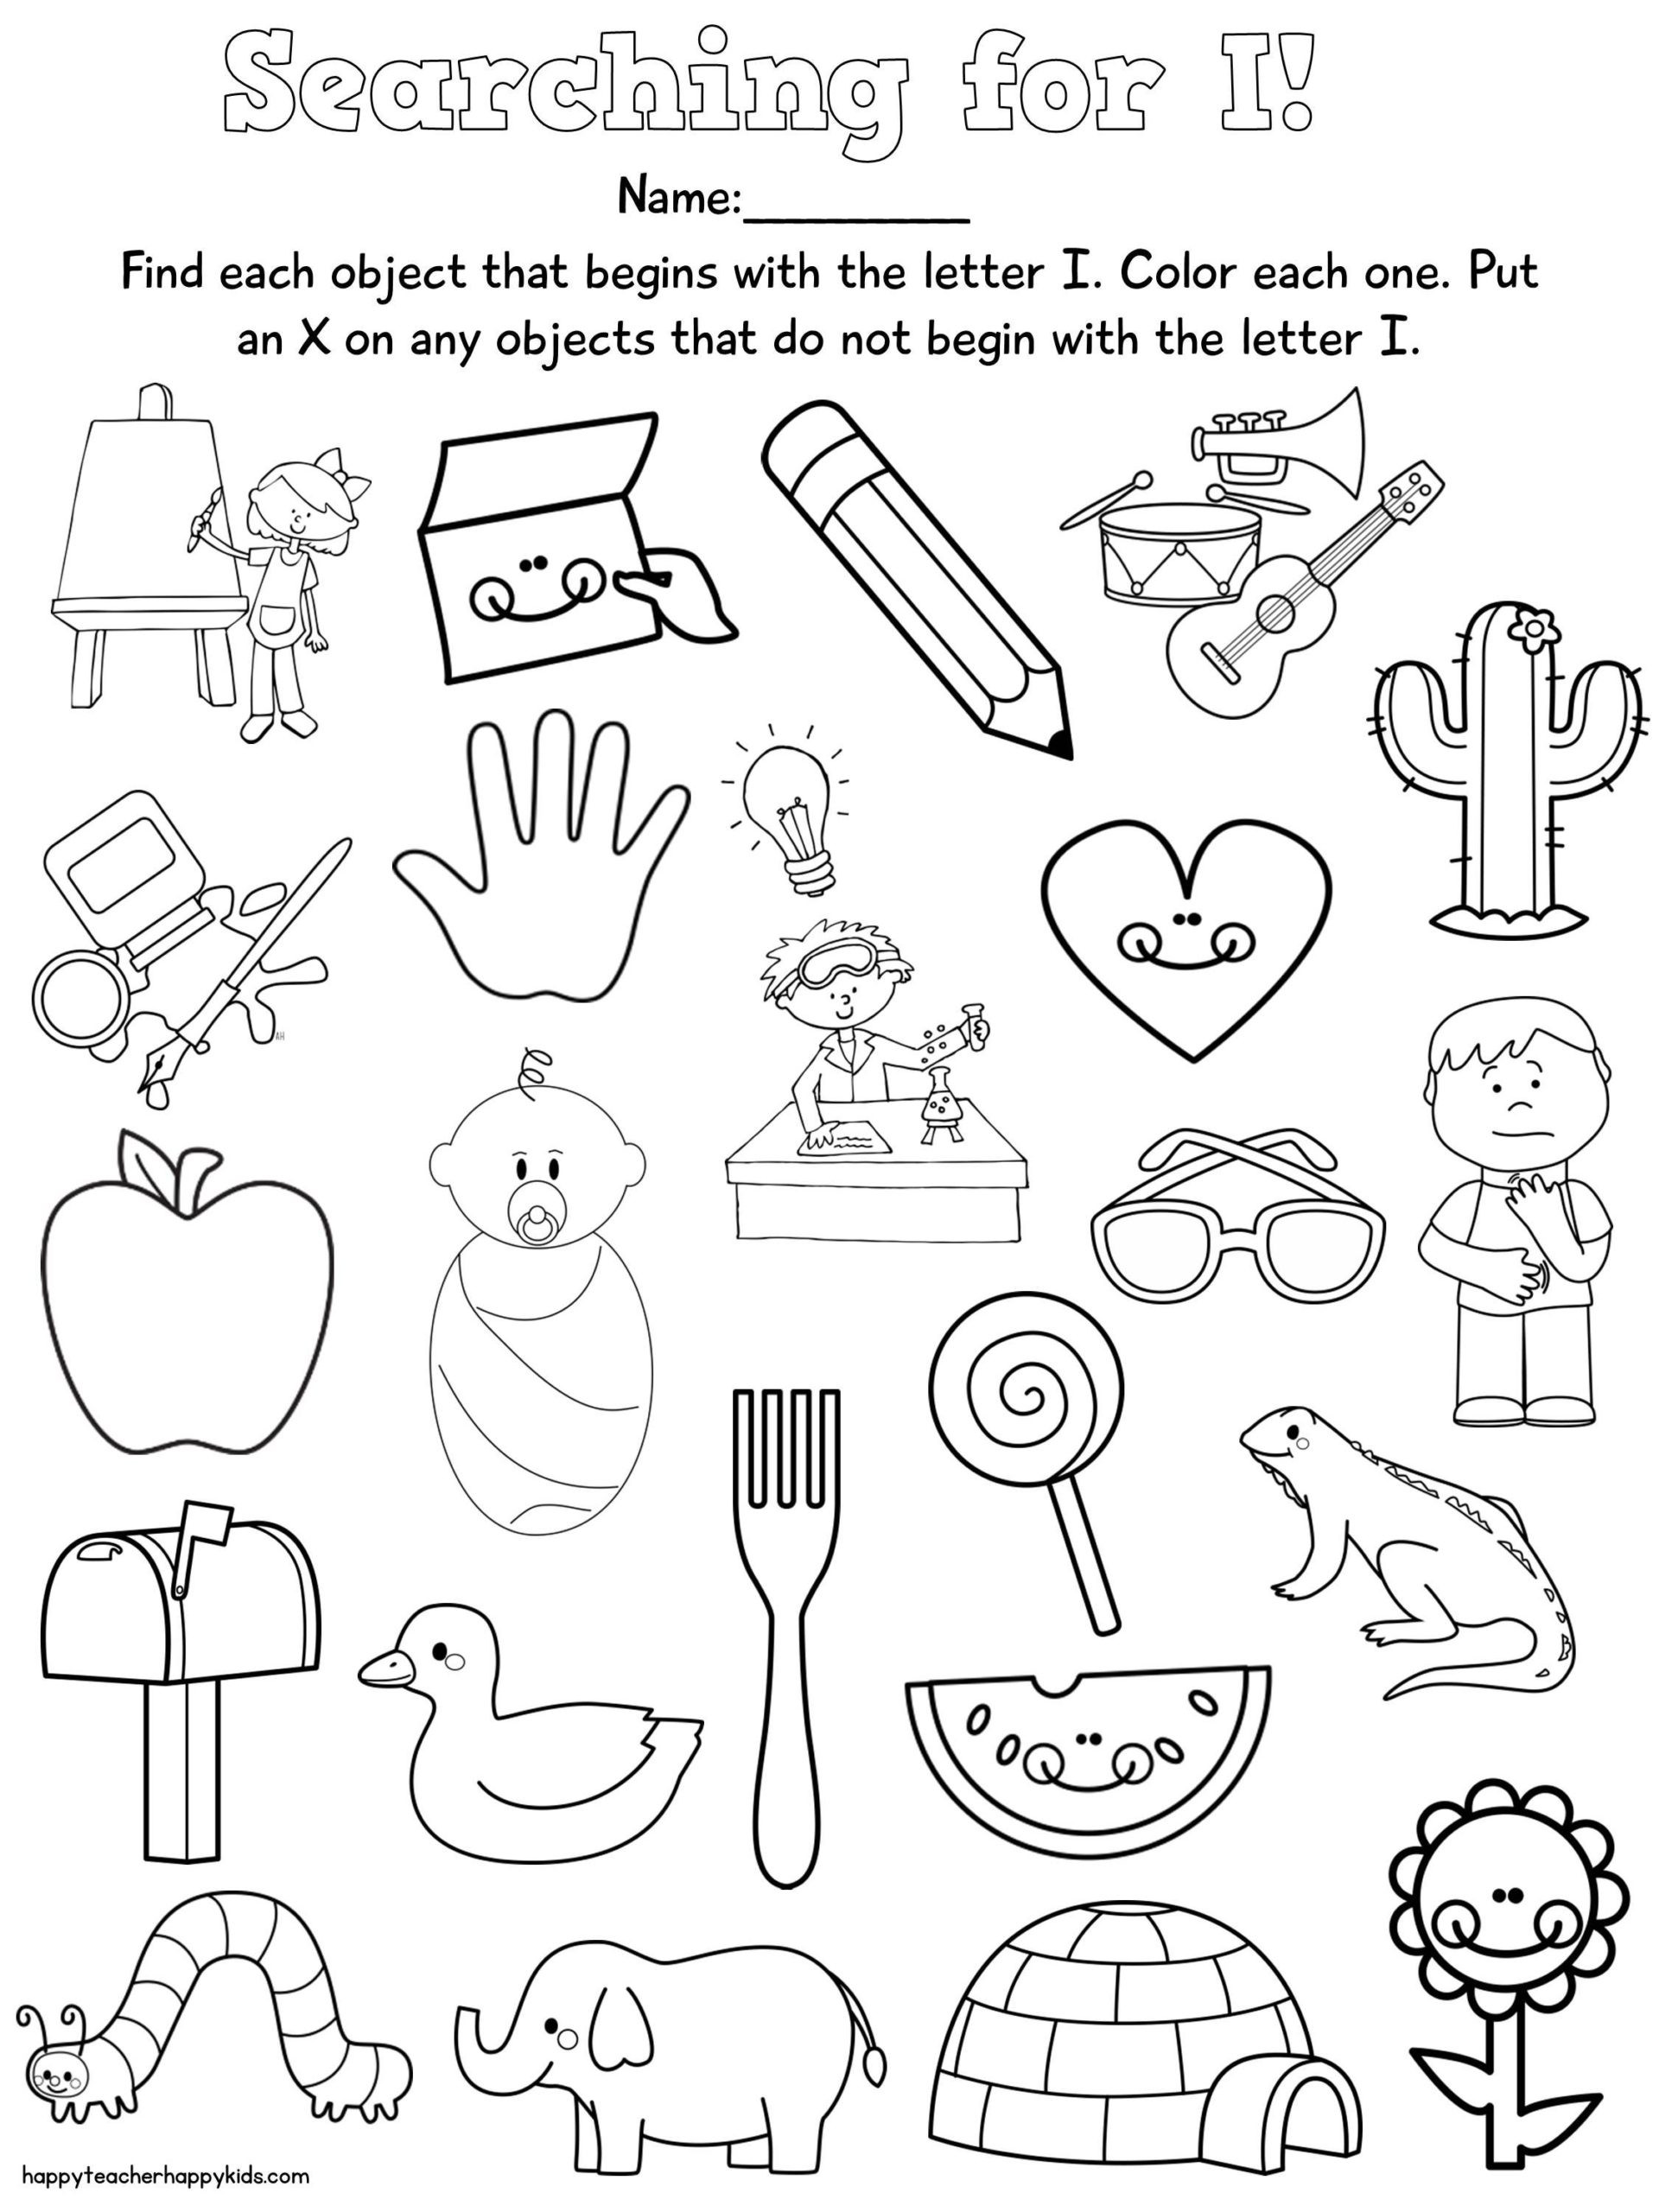 Silent E Worksheets for Kindergarten